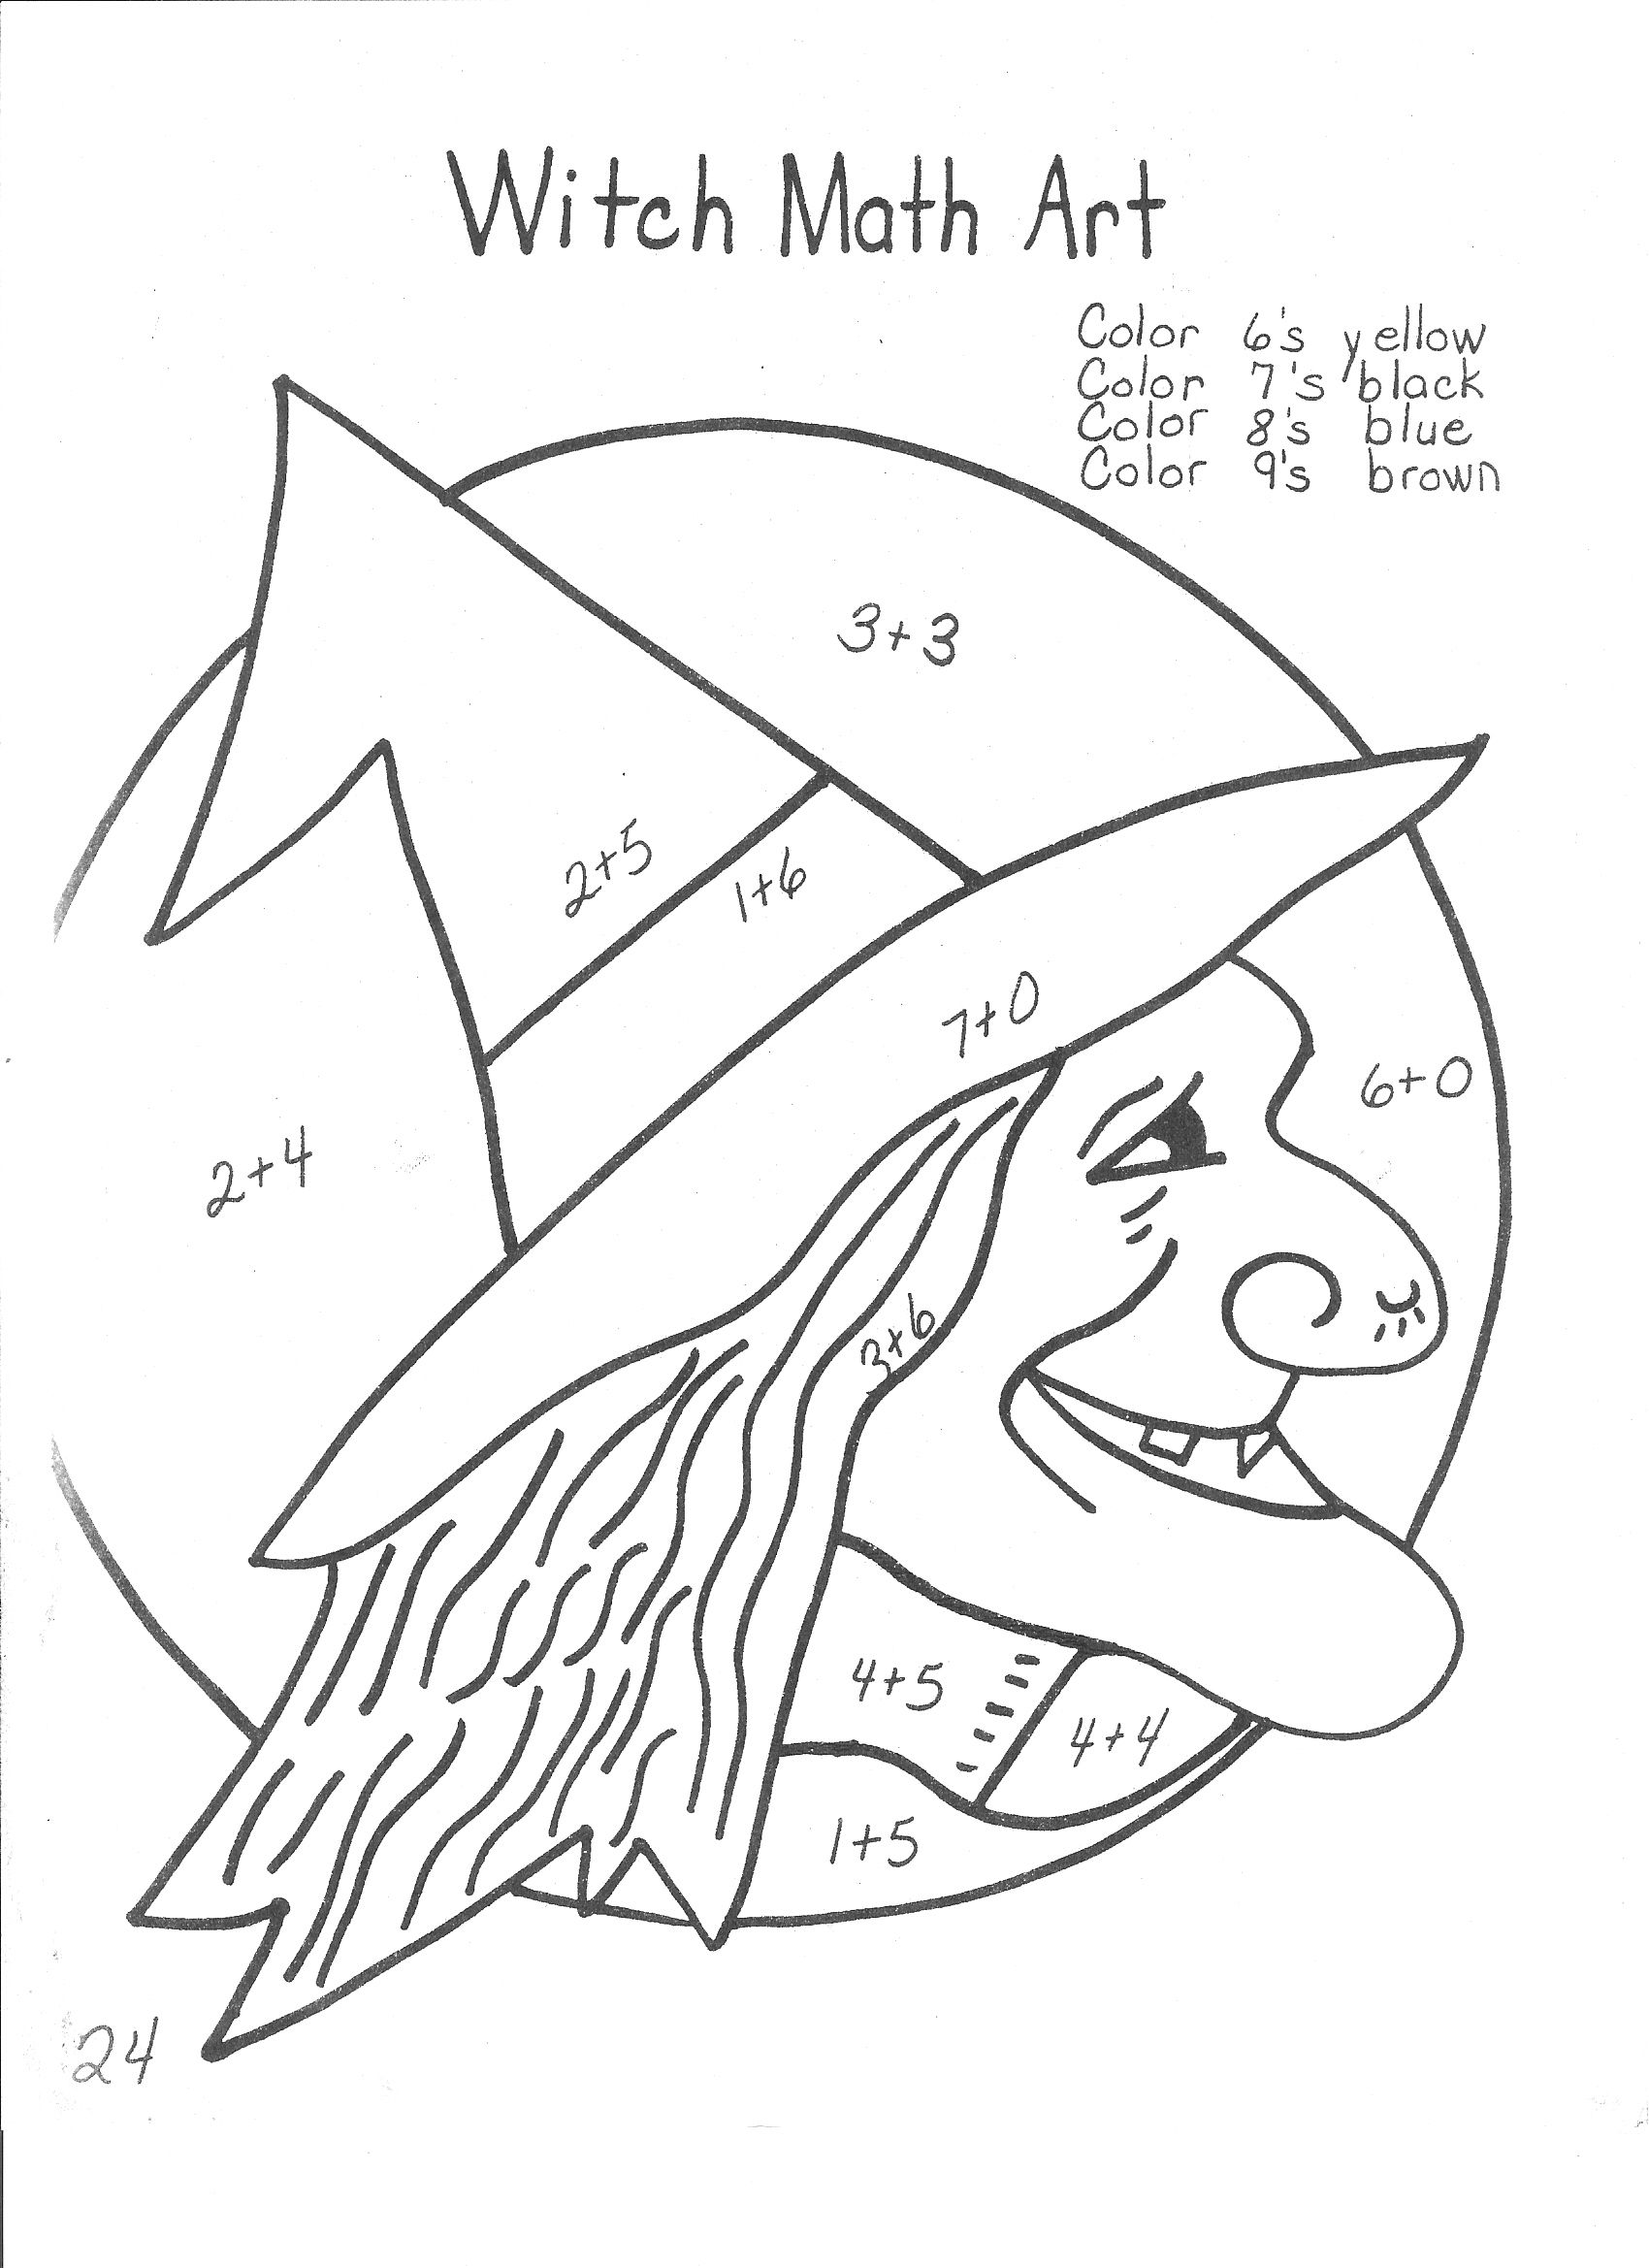 witches 13 days of halloween ideas the home teacher math coloring - Halloween Math Coloring Pages